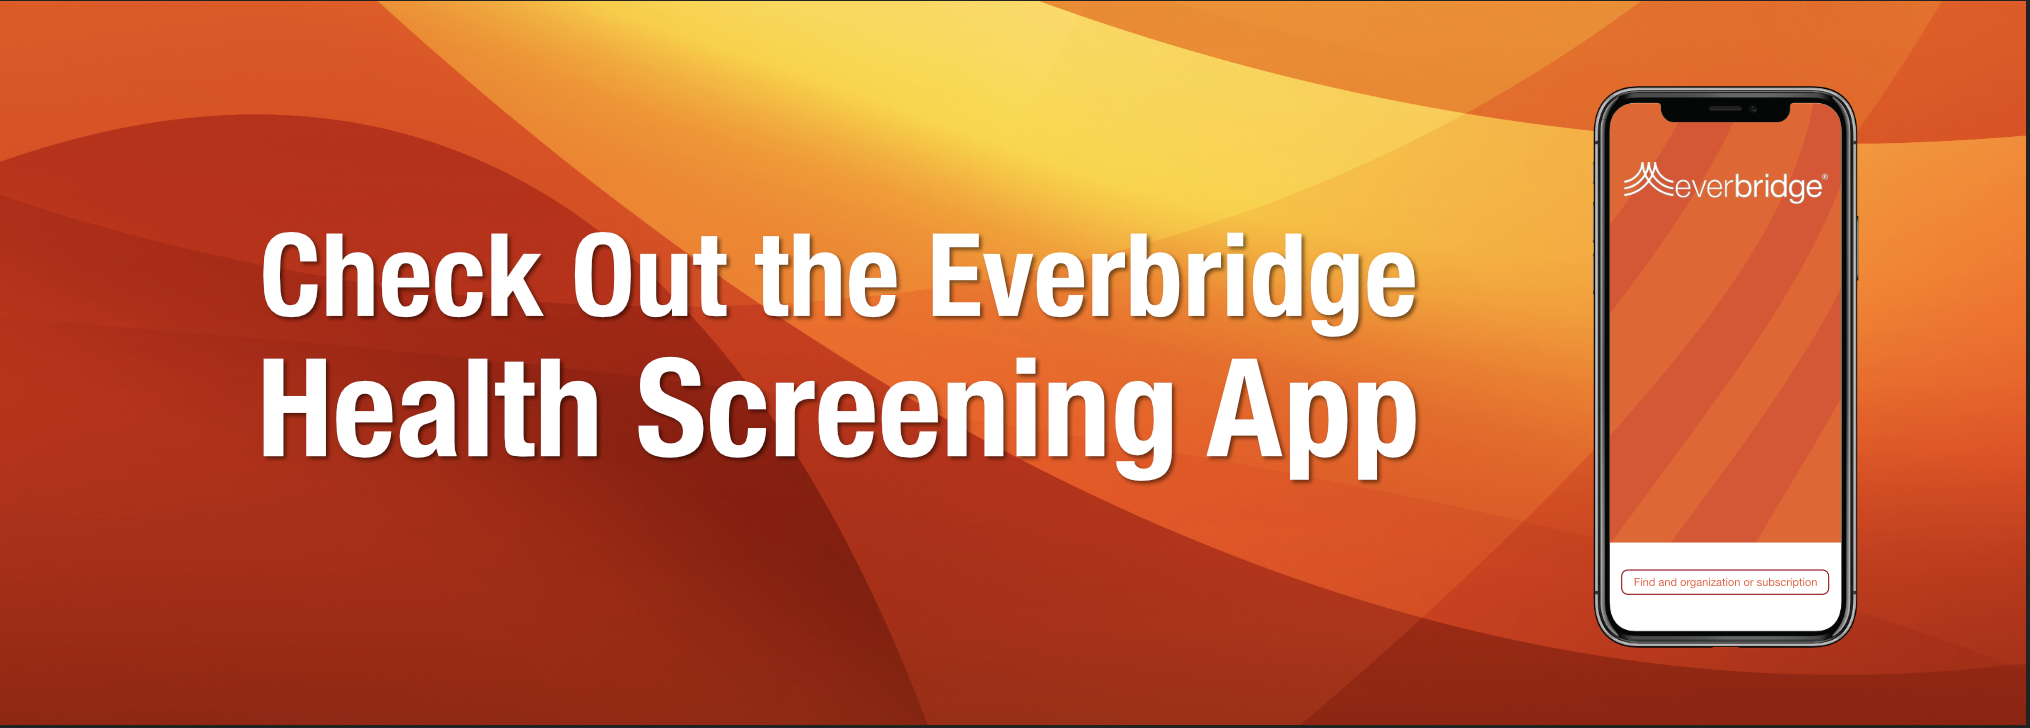 Check Out the Everbridge Health Screening App